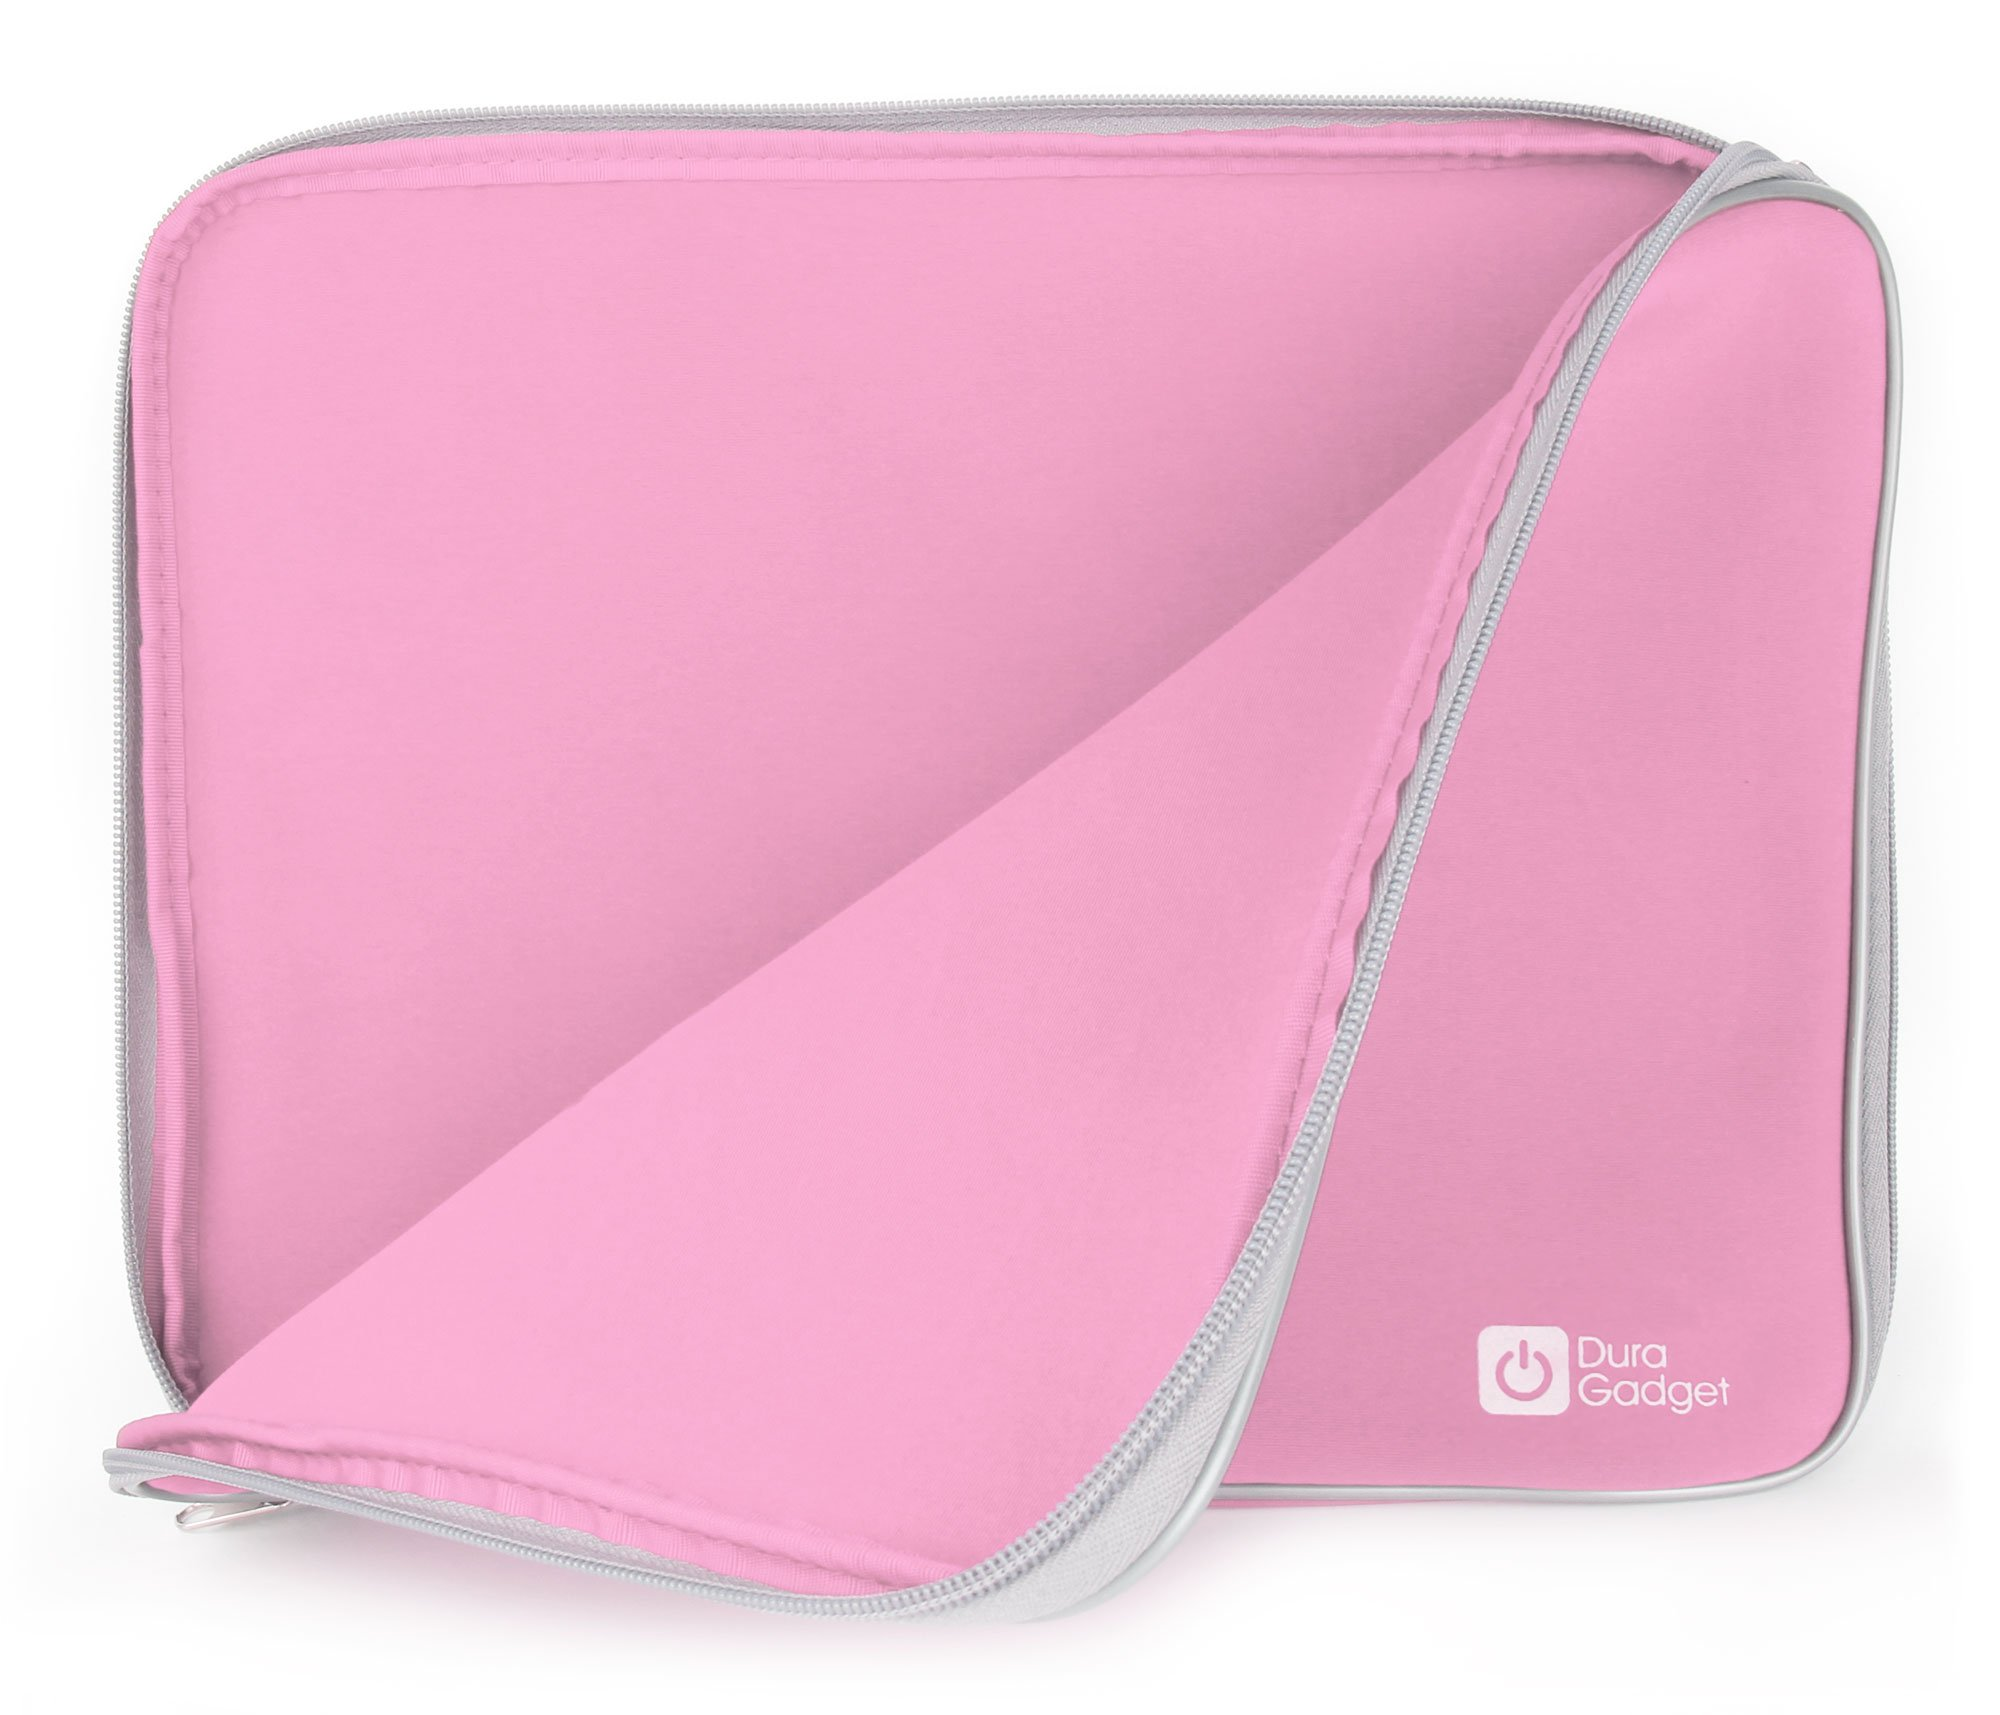 Pink 'Travel' Sleeve Case in Shock-Absorbing & Water-Resistant Neoprene for The Lenovo Miix 520 - by DURAGDGET by DURAGADGET (Image #1)